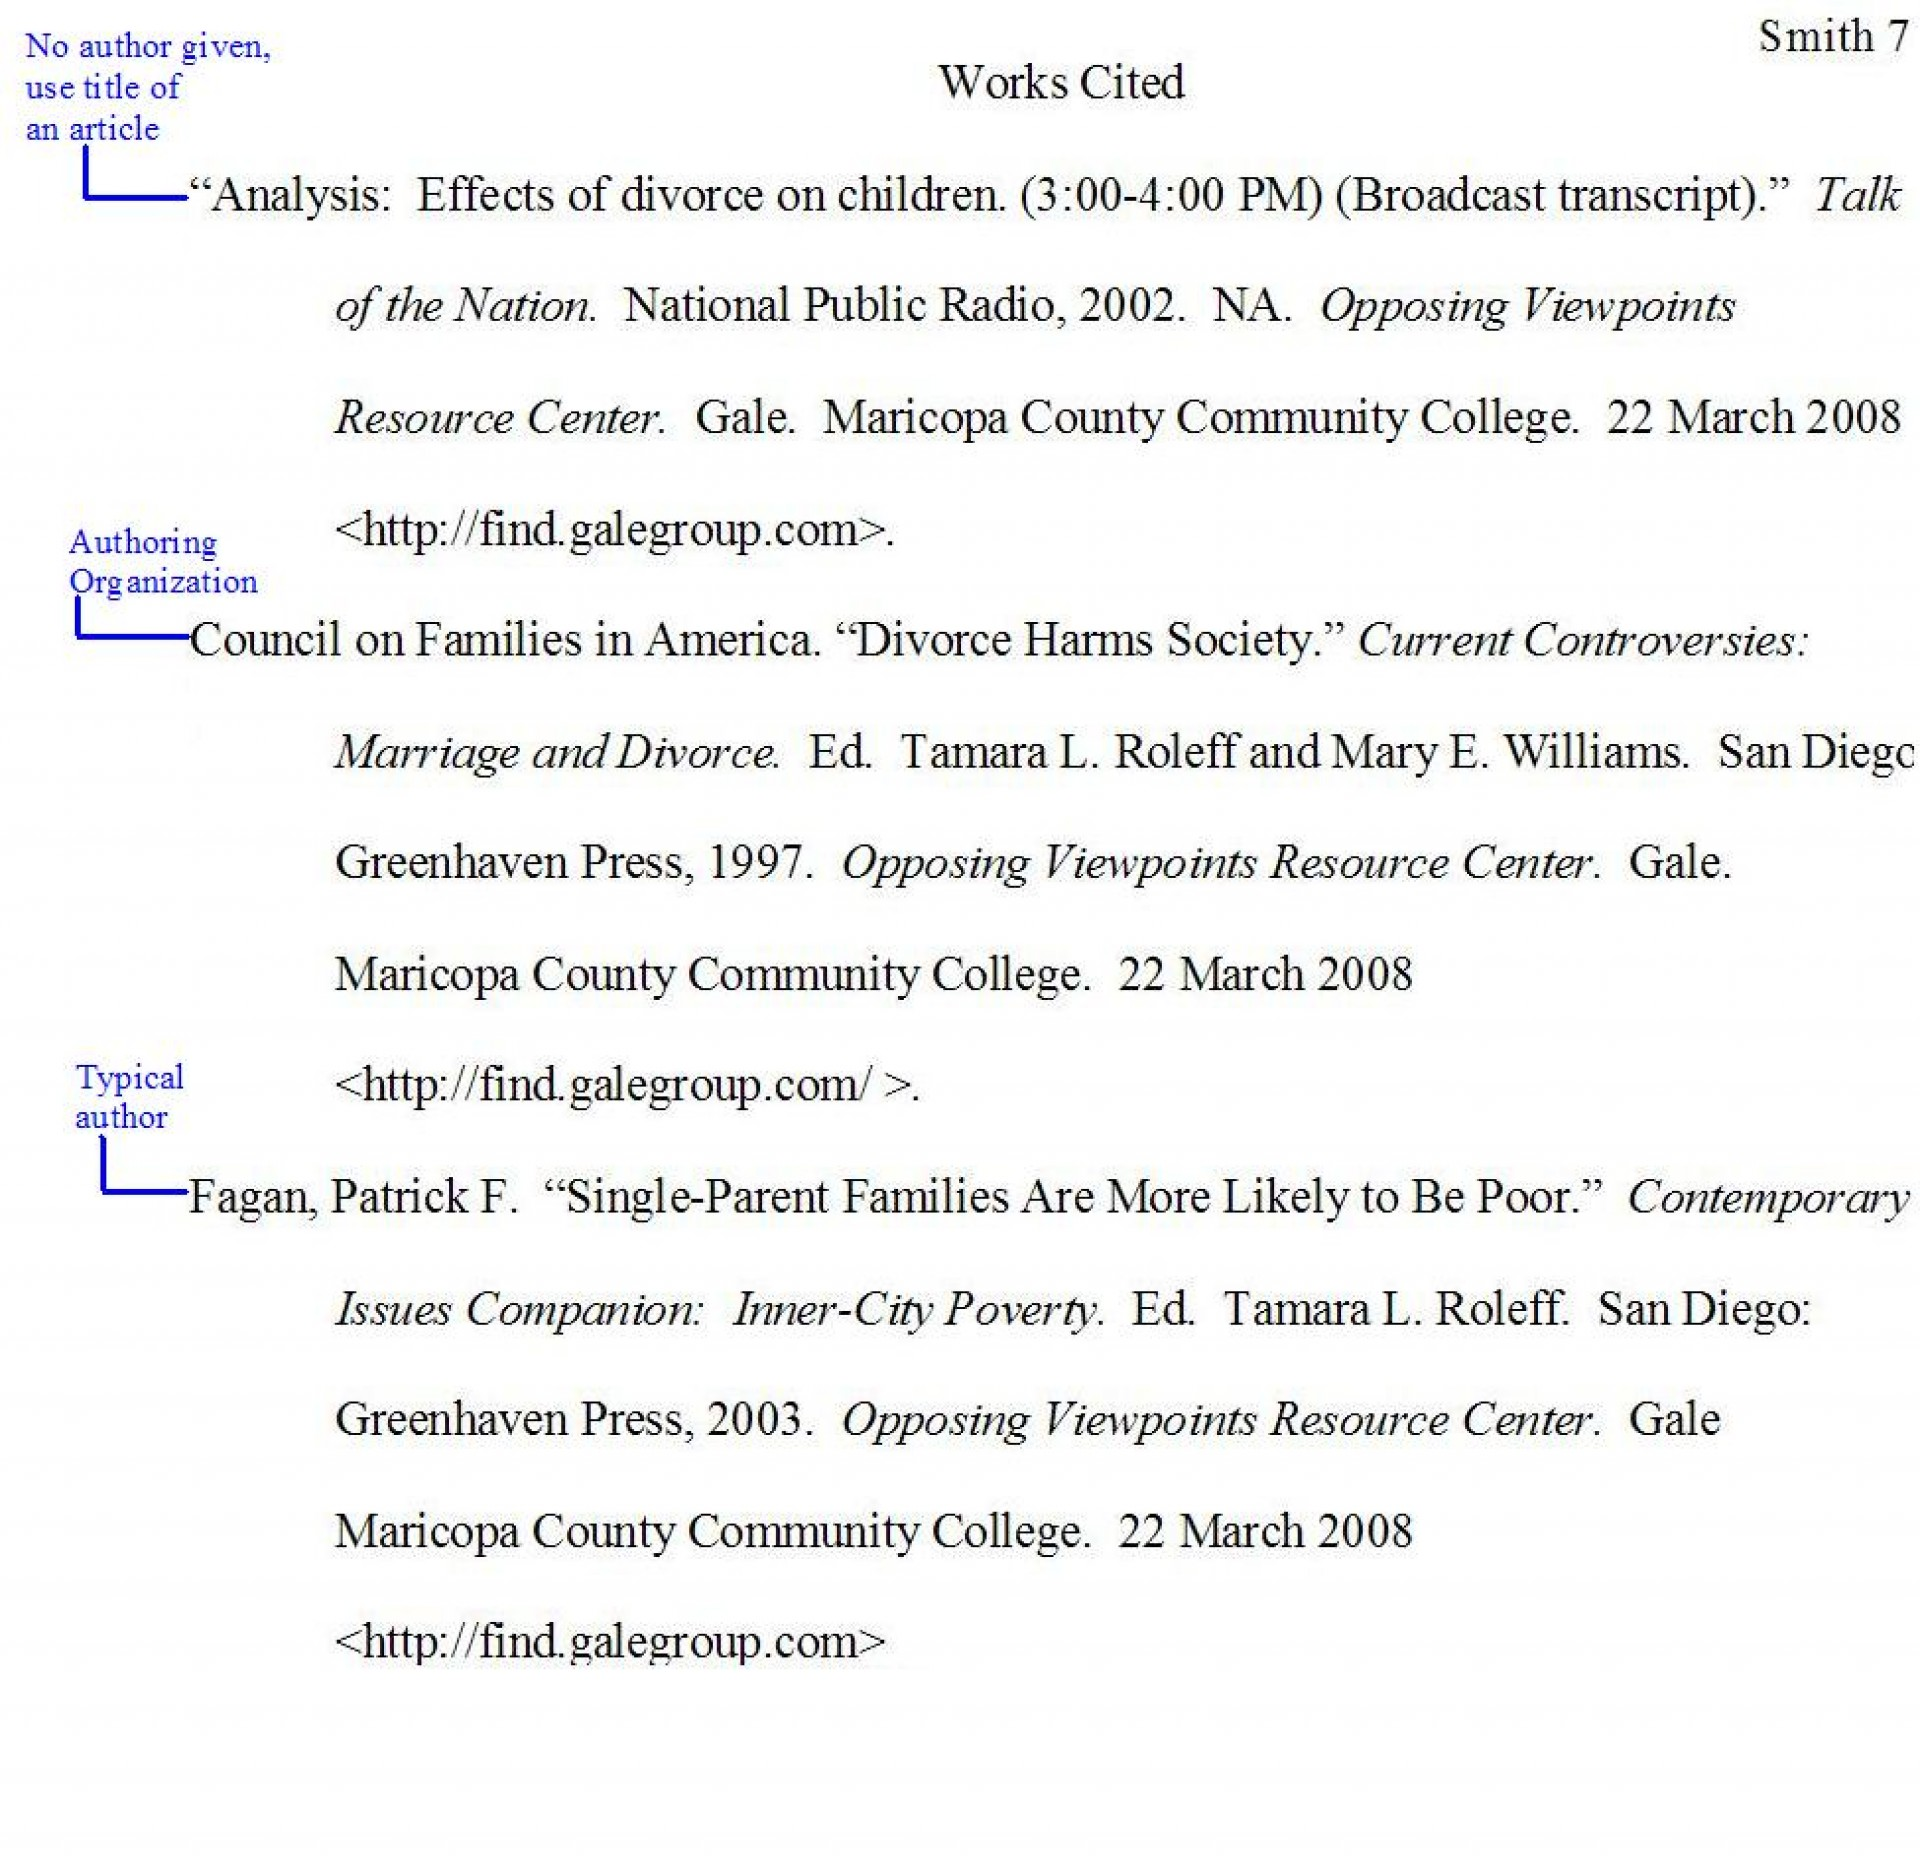 010 Samplewrkctd Jpg Research Paper Citations In Awesome A Mla Citing Sources Citation Example 1920